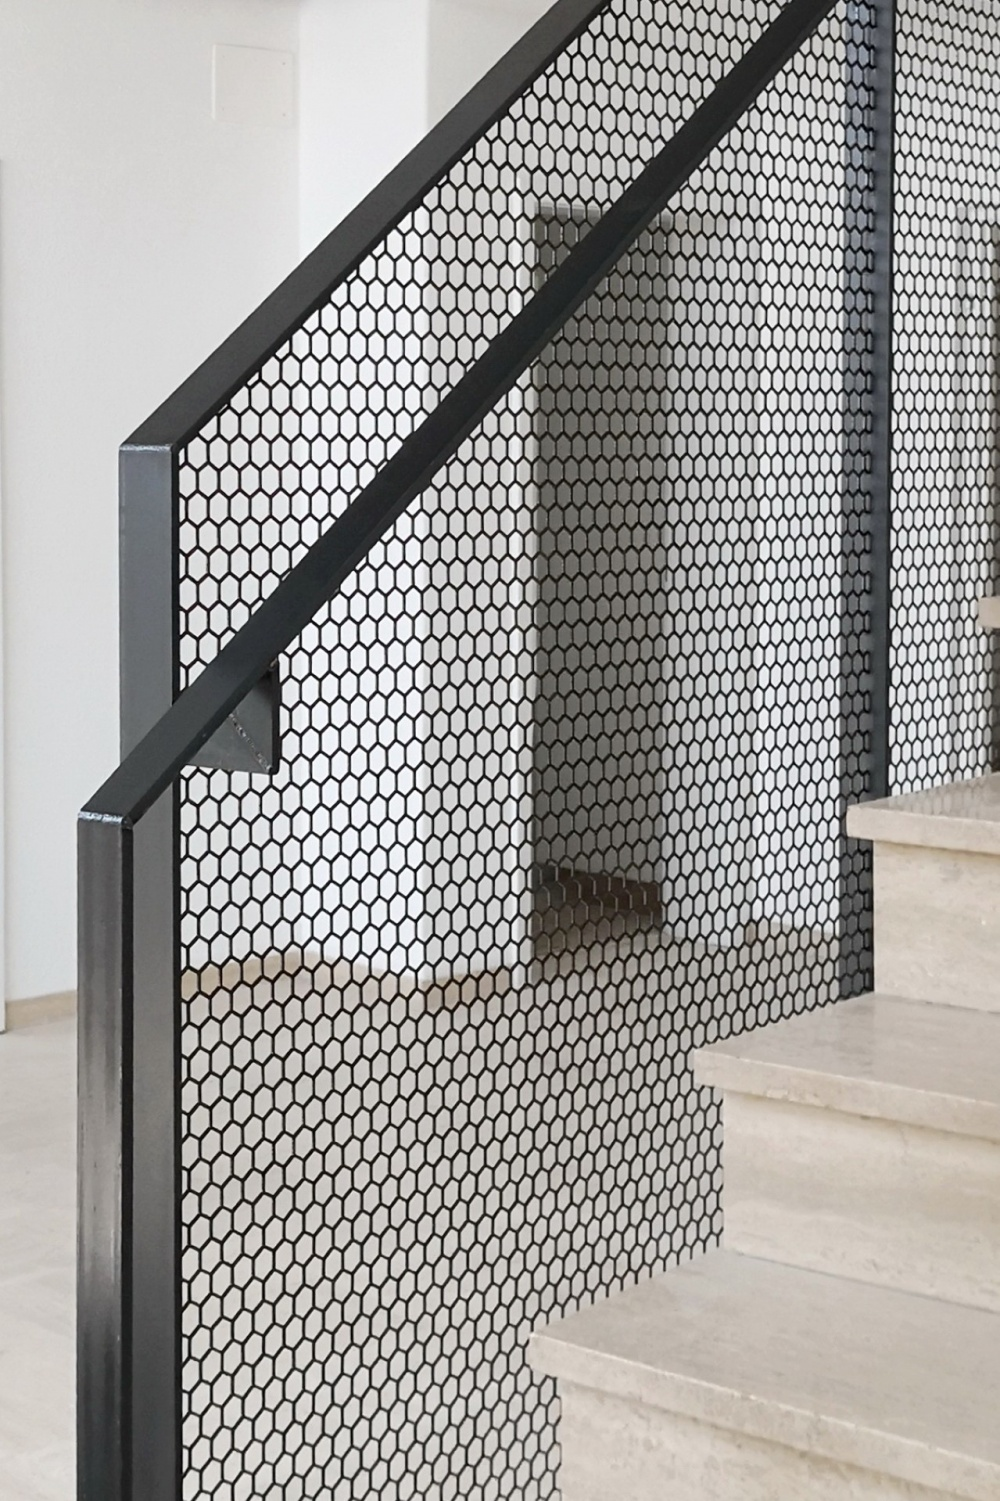 hexagonal perforated steel balustrade made by luginbuehl